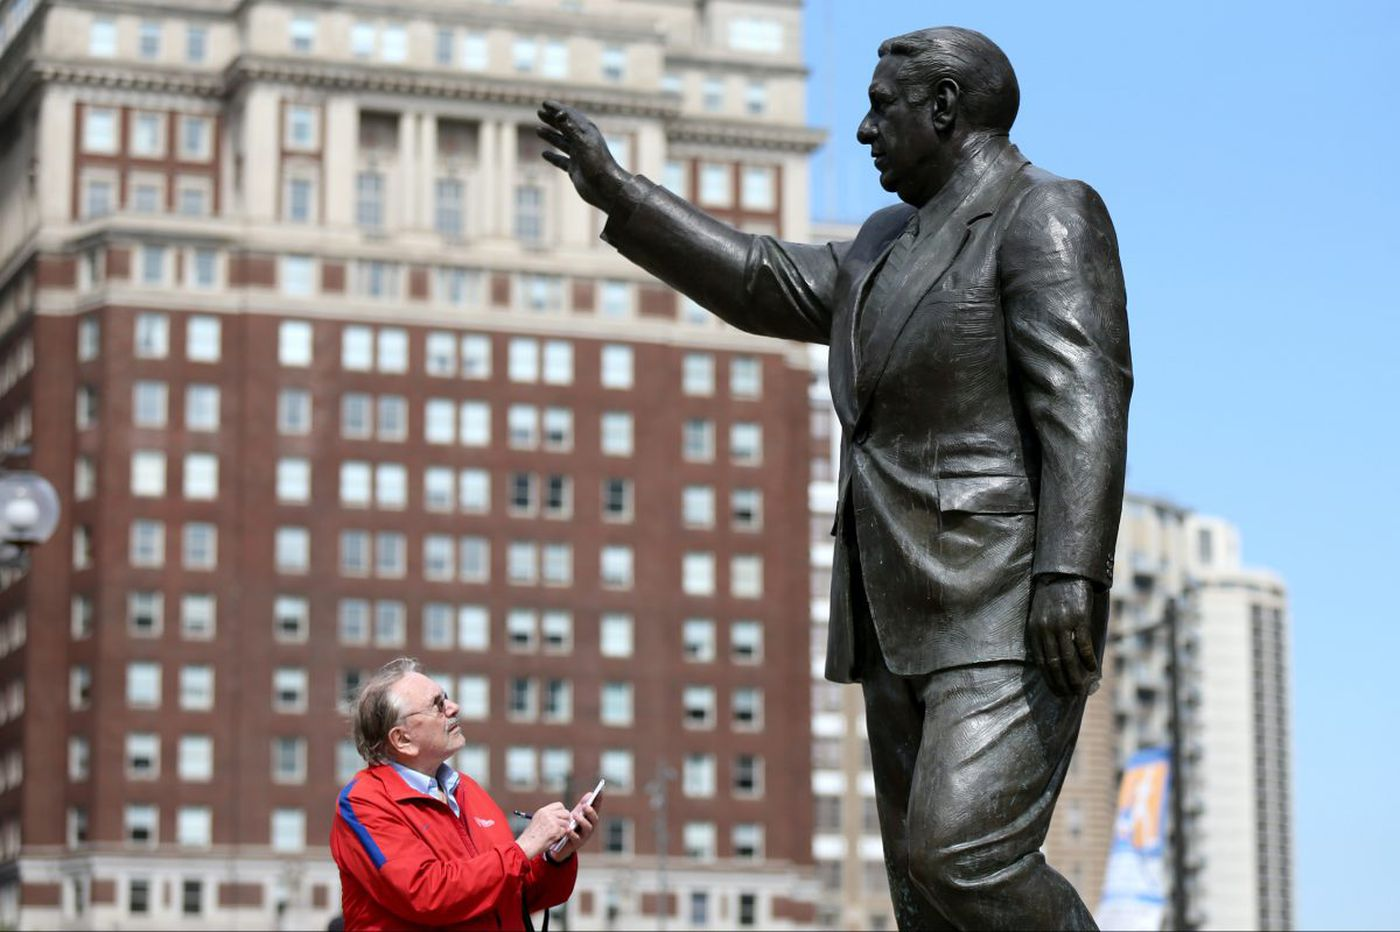 6 months later, statuesque Rizzo speaks up | Stu Bykofsky